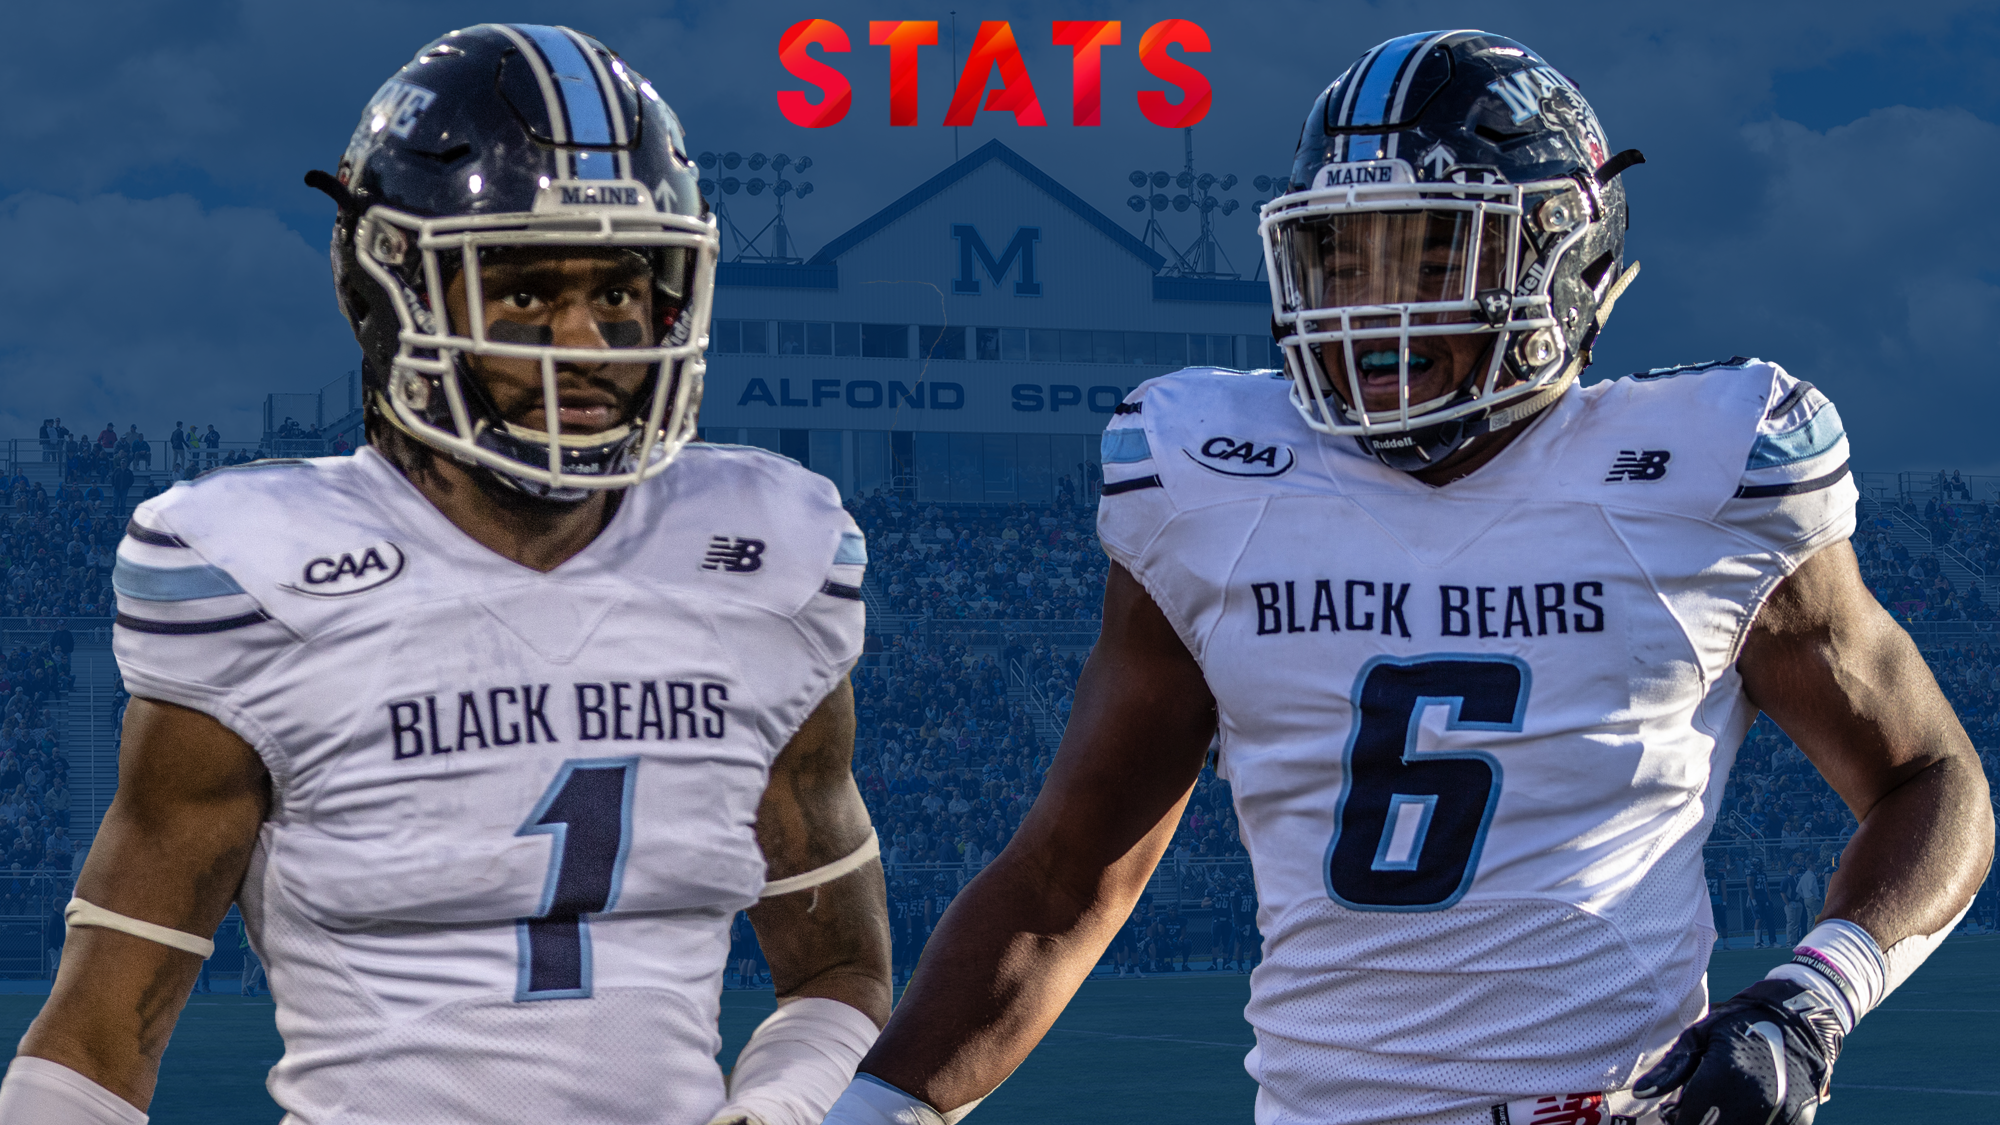 Sheffield, Patterson Named to STATS FCS All-America Team